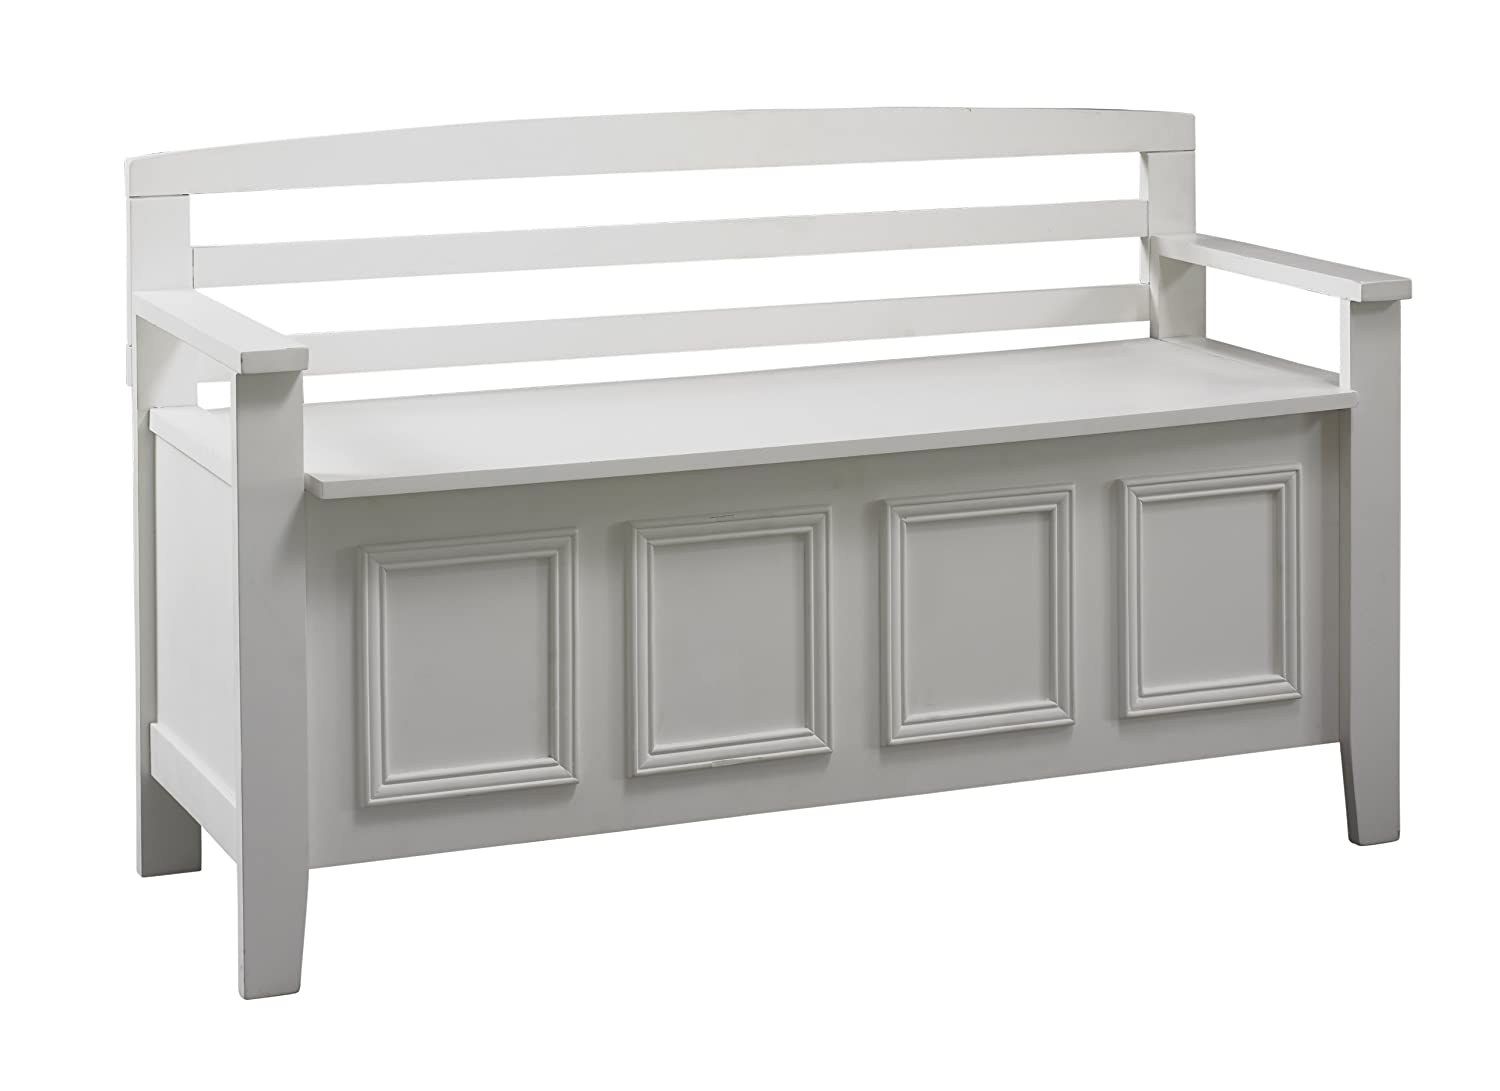 Amazon.com: Linon Laredo Storage Bench: Kitchen & Dining